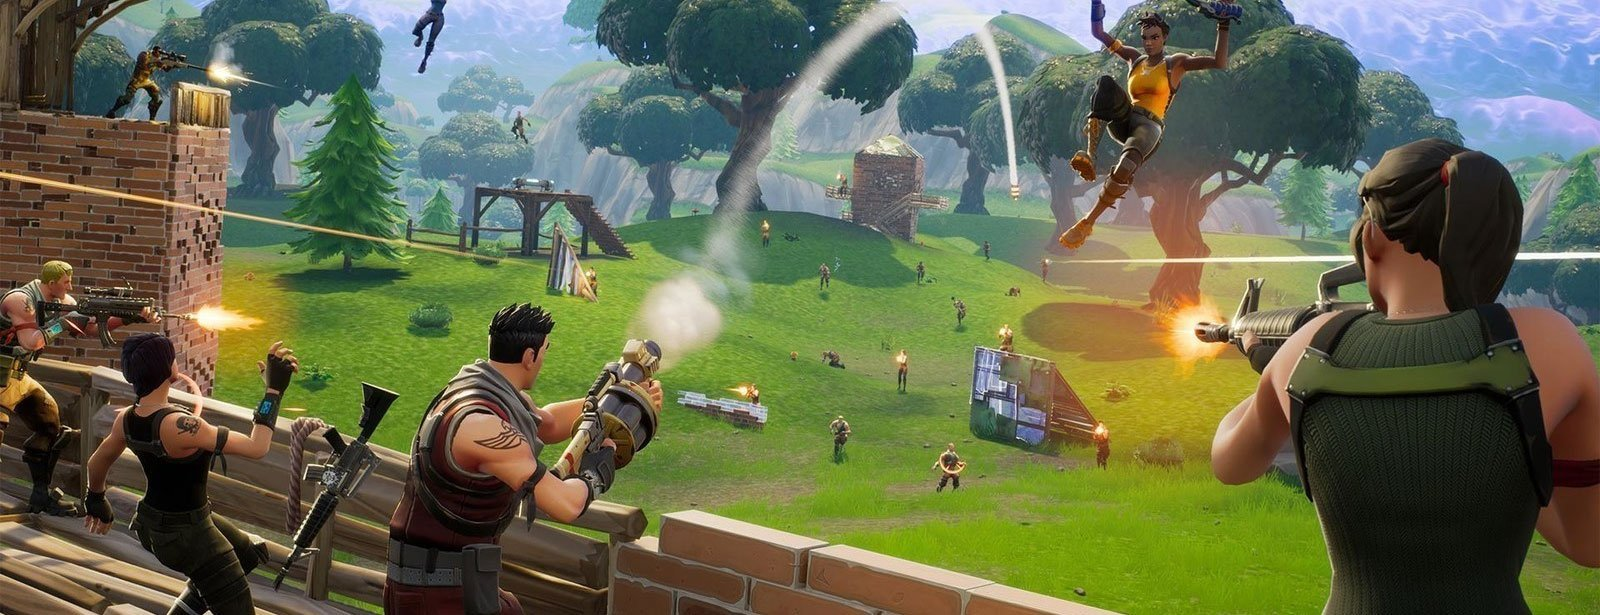 How to make Fortnite Run Better on Mac - Increase FPS (August 2019)